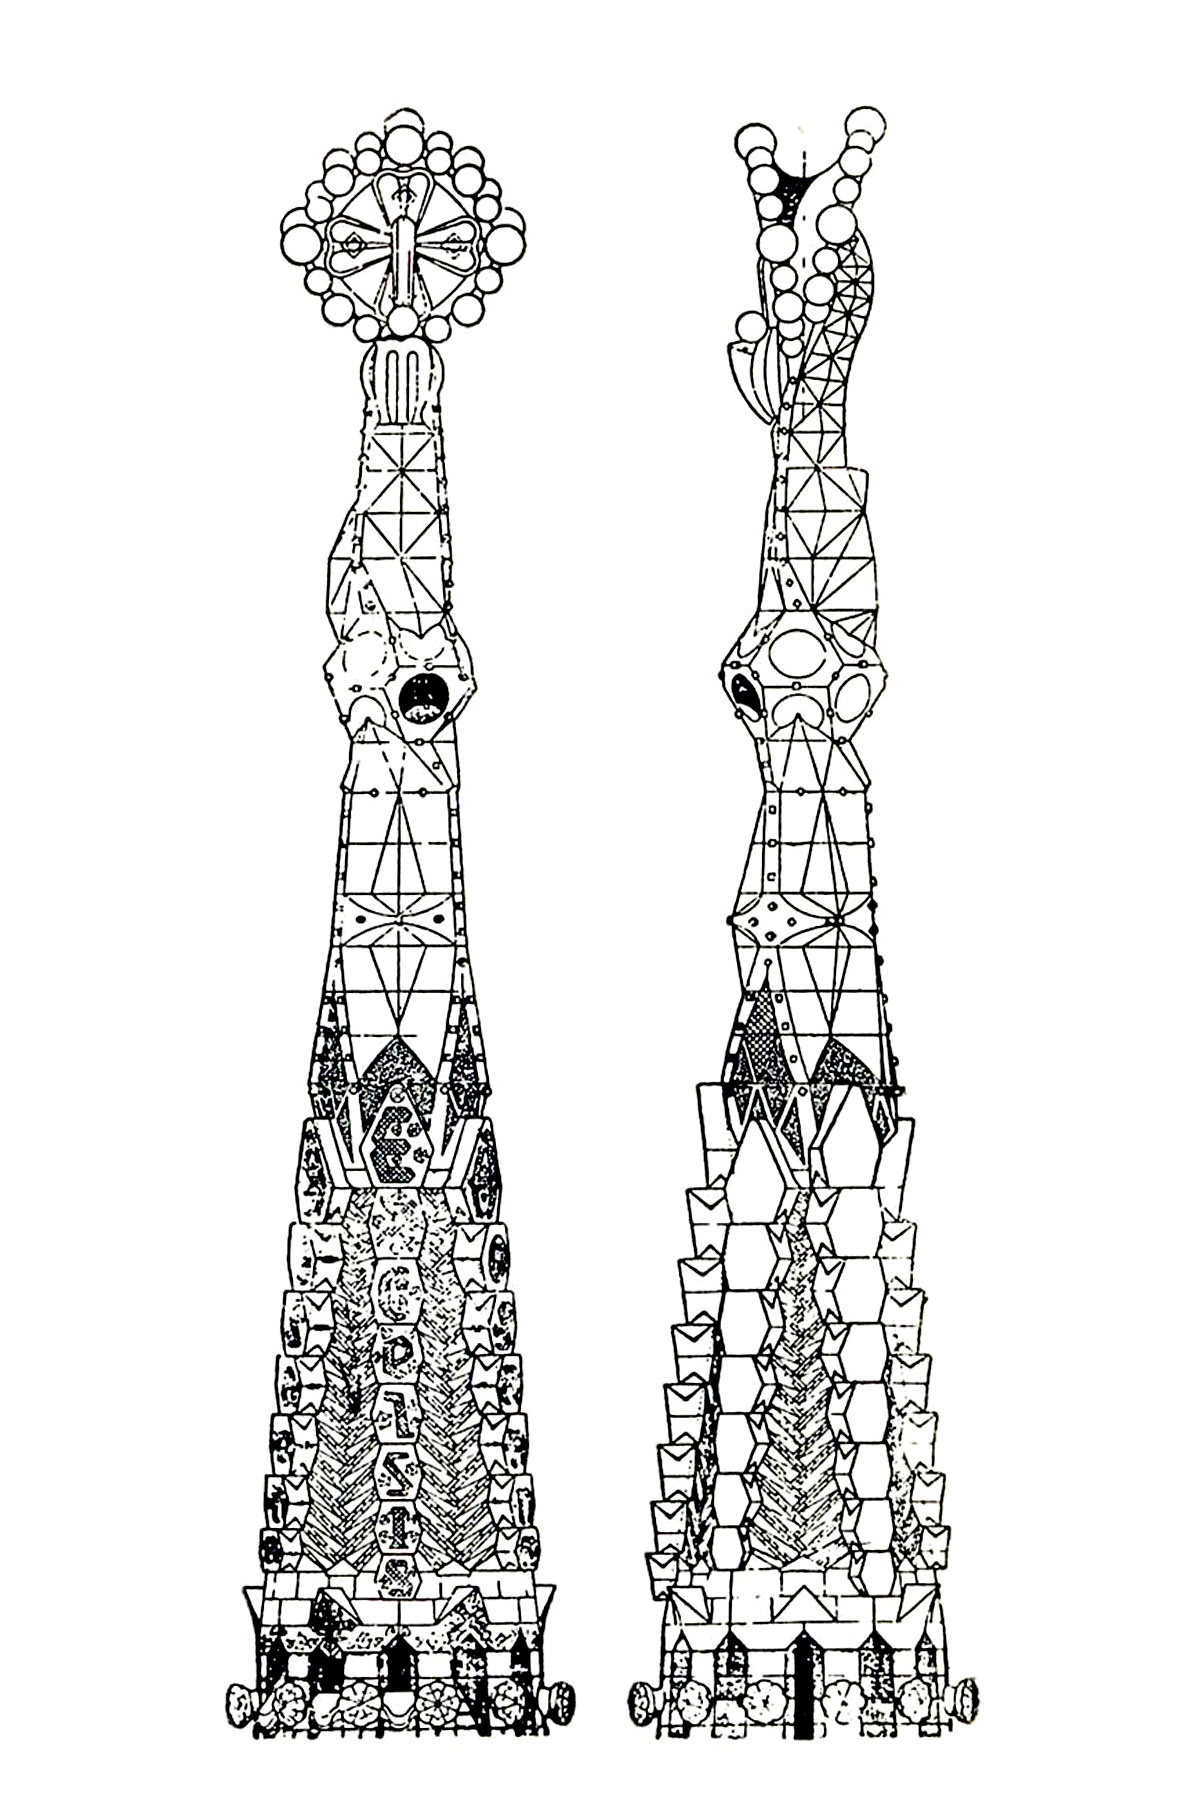 Drawing of two towers of the Sagrada Familia : the unfinished Cathedral by Gaudi